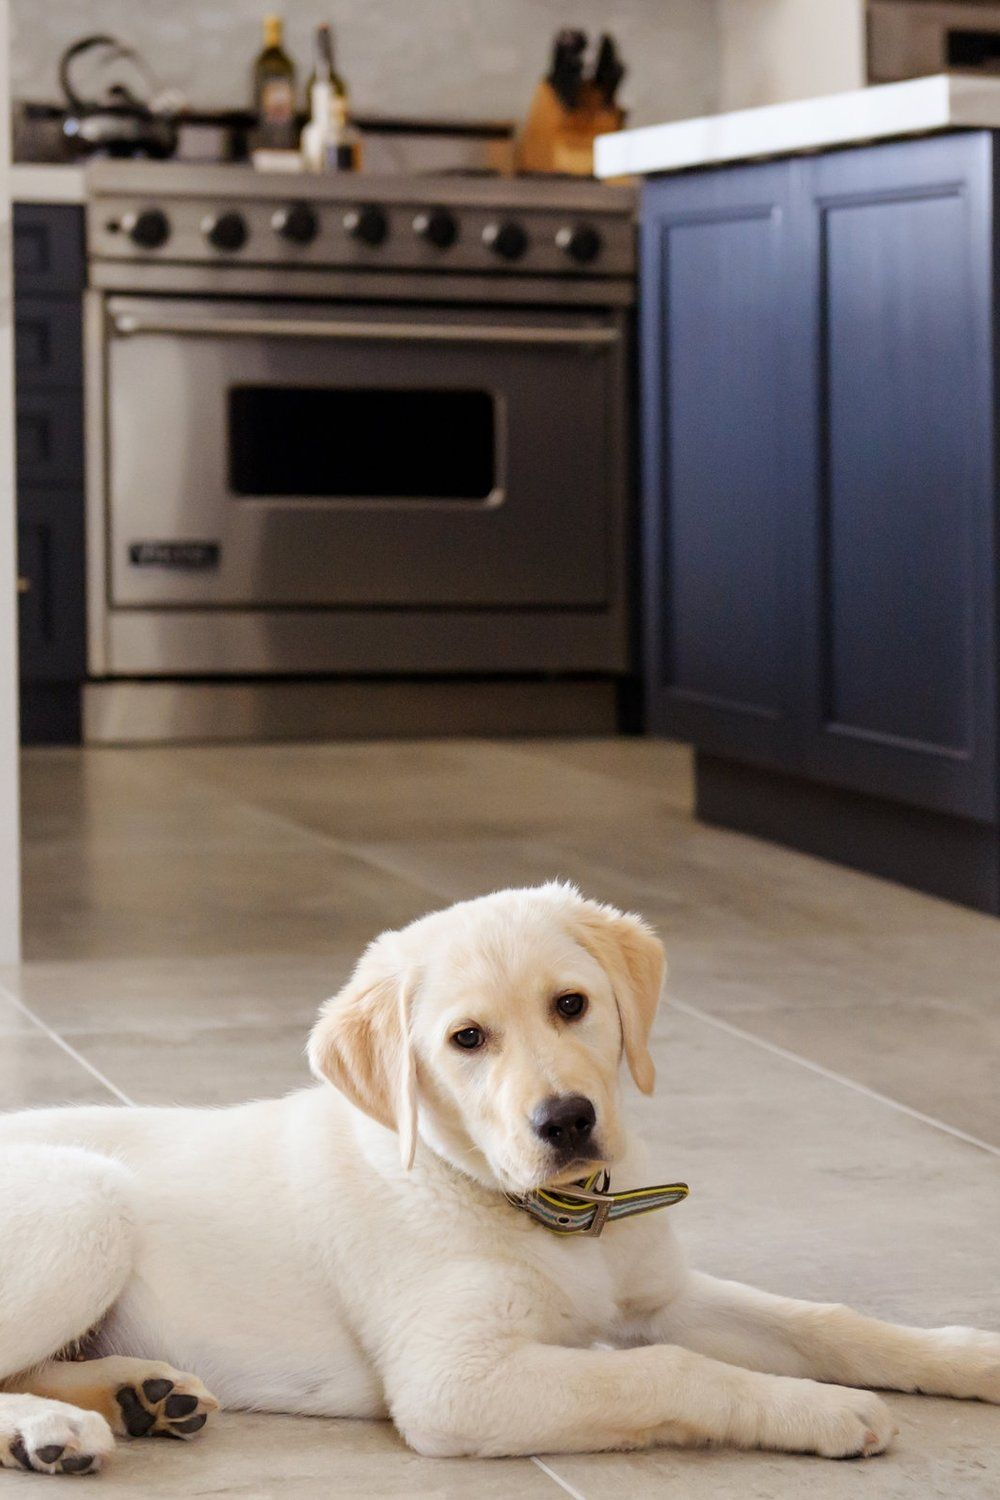 Woodstock The Golden Retriever Labrador Puppy On Oversized